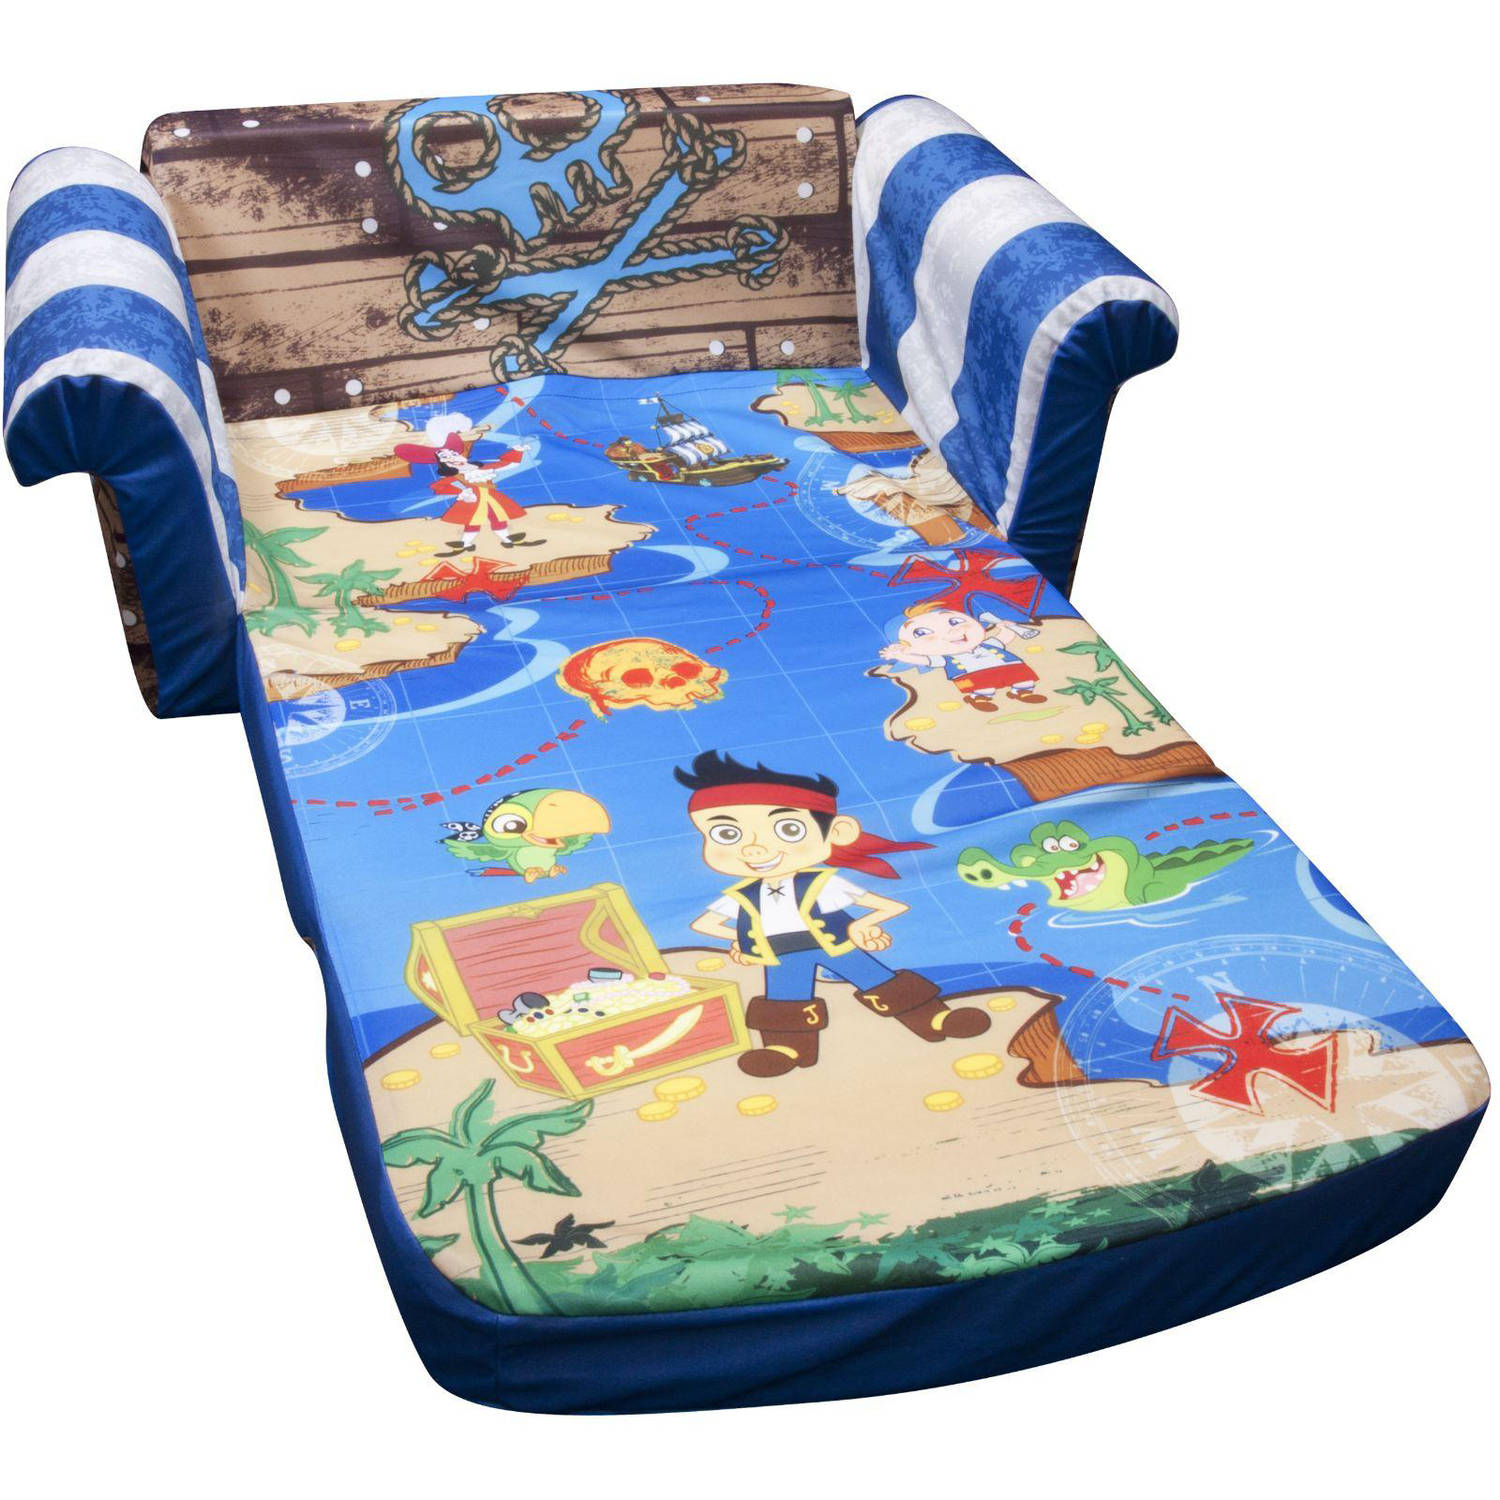 Marshmallow 2-in-1 Flip Open Sofa, Disney Jake and the Neverland Pirates